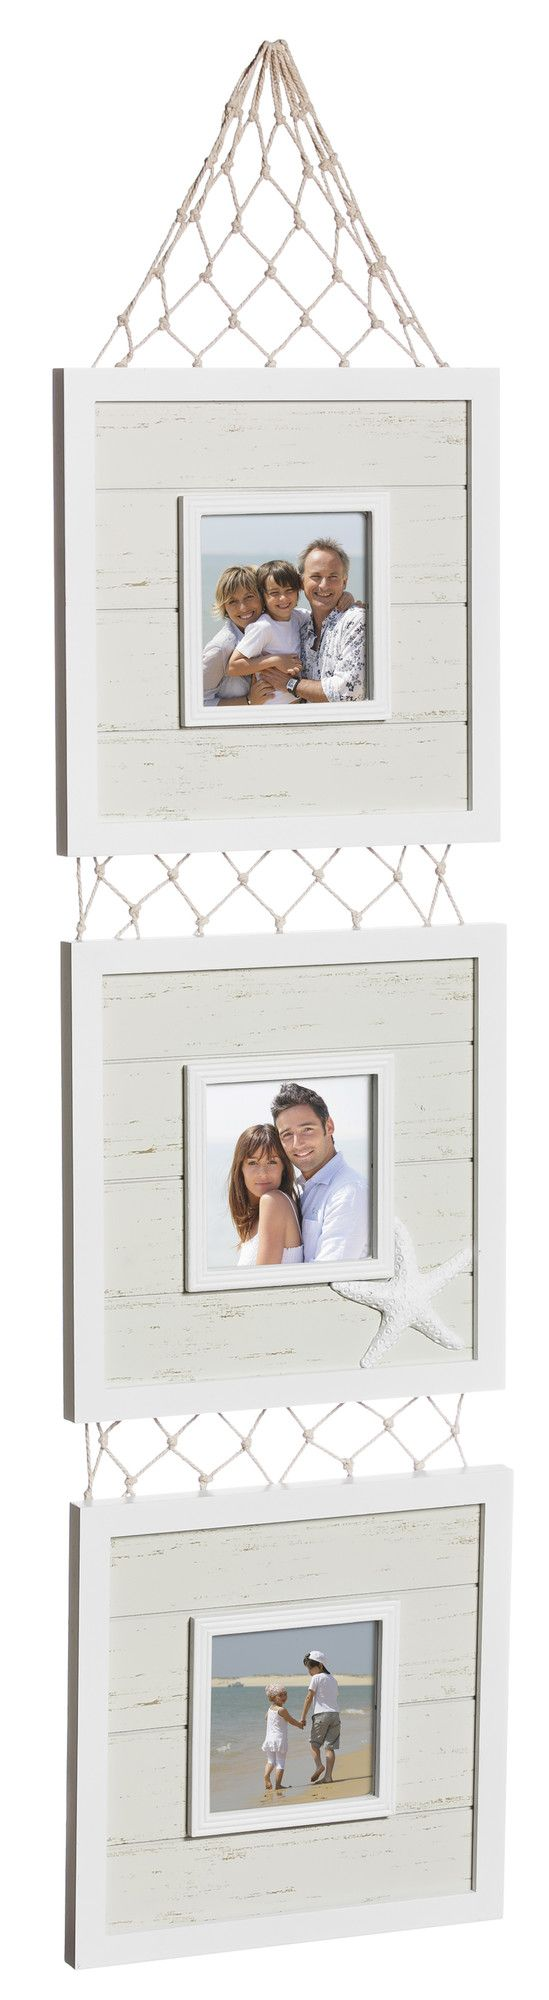 Coastal Holds Wooden Tiered Picture Frame | Coastal Charm ...